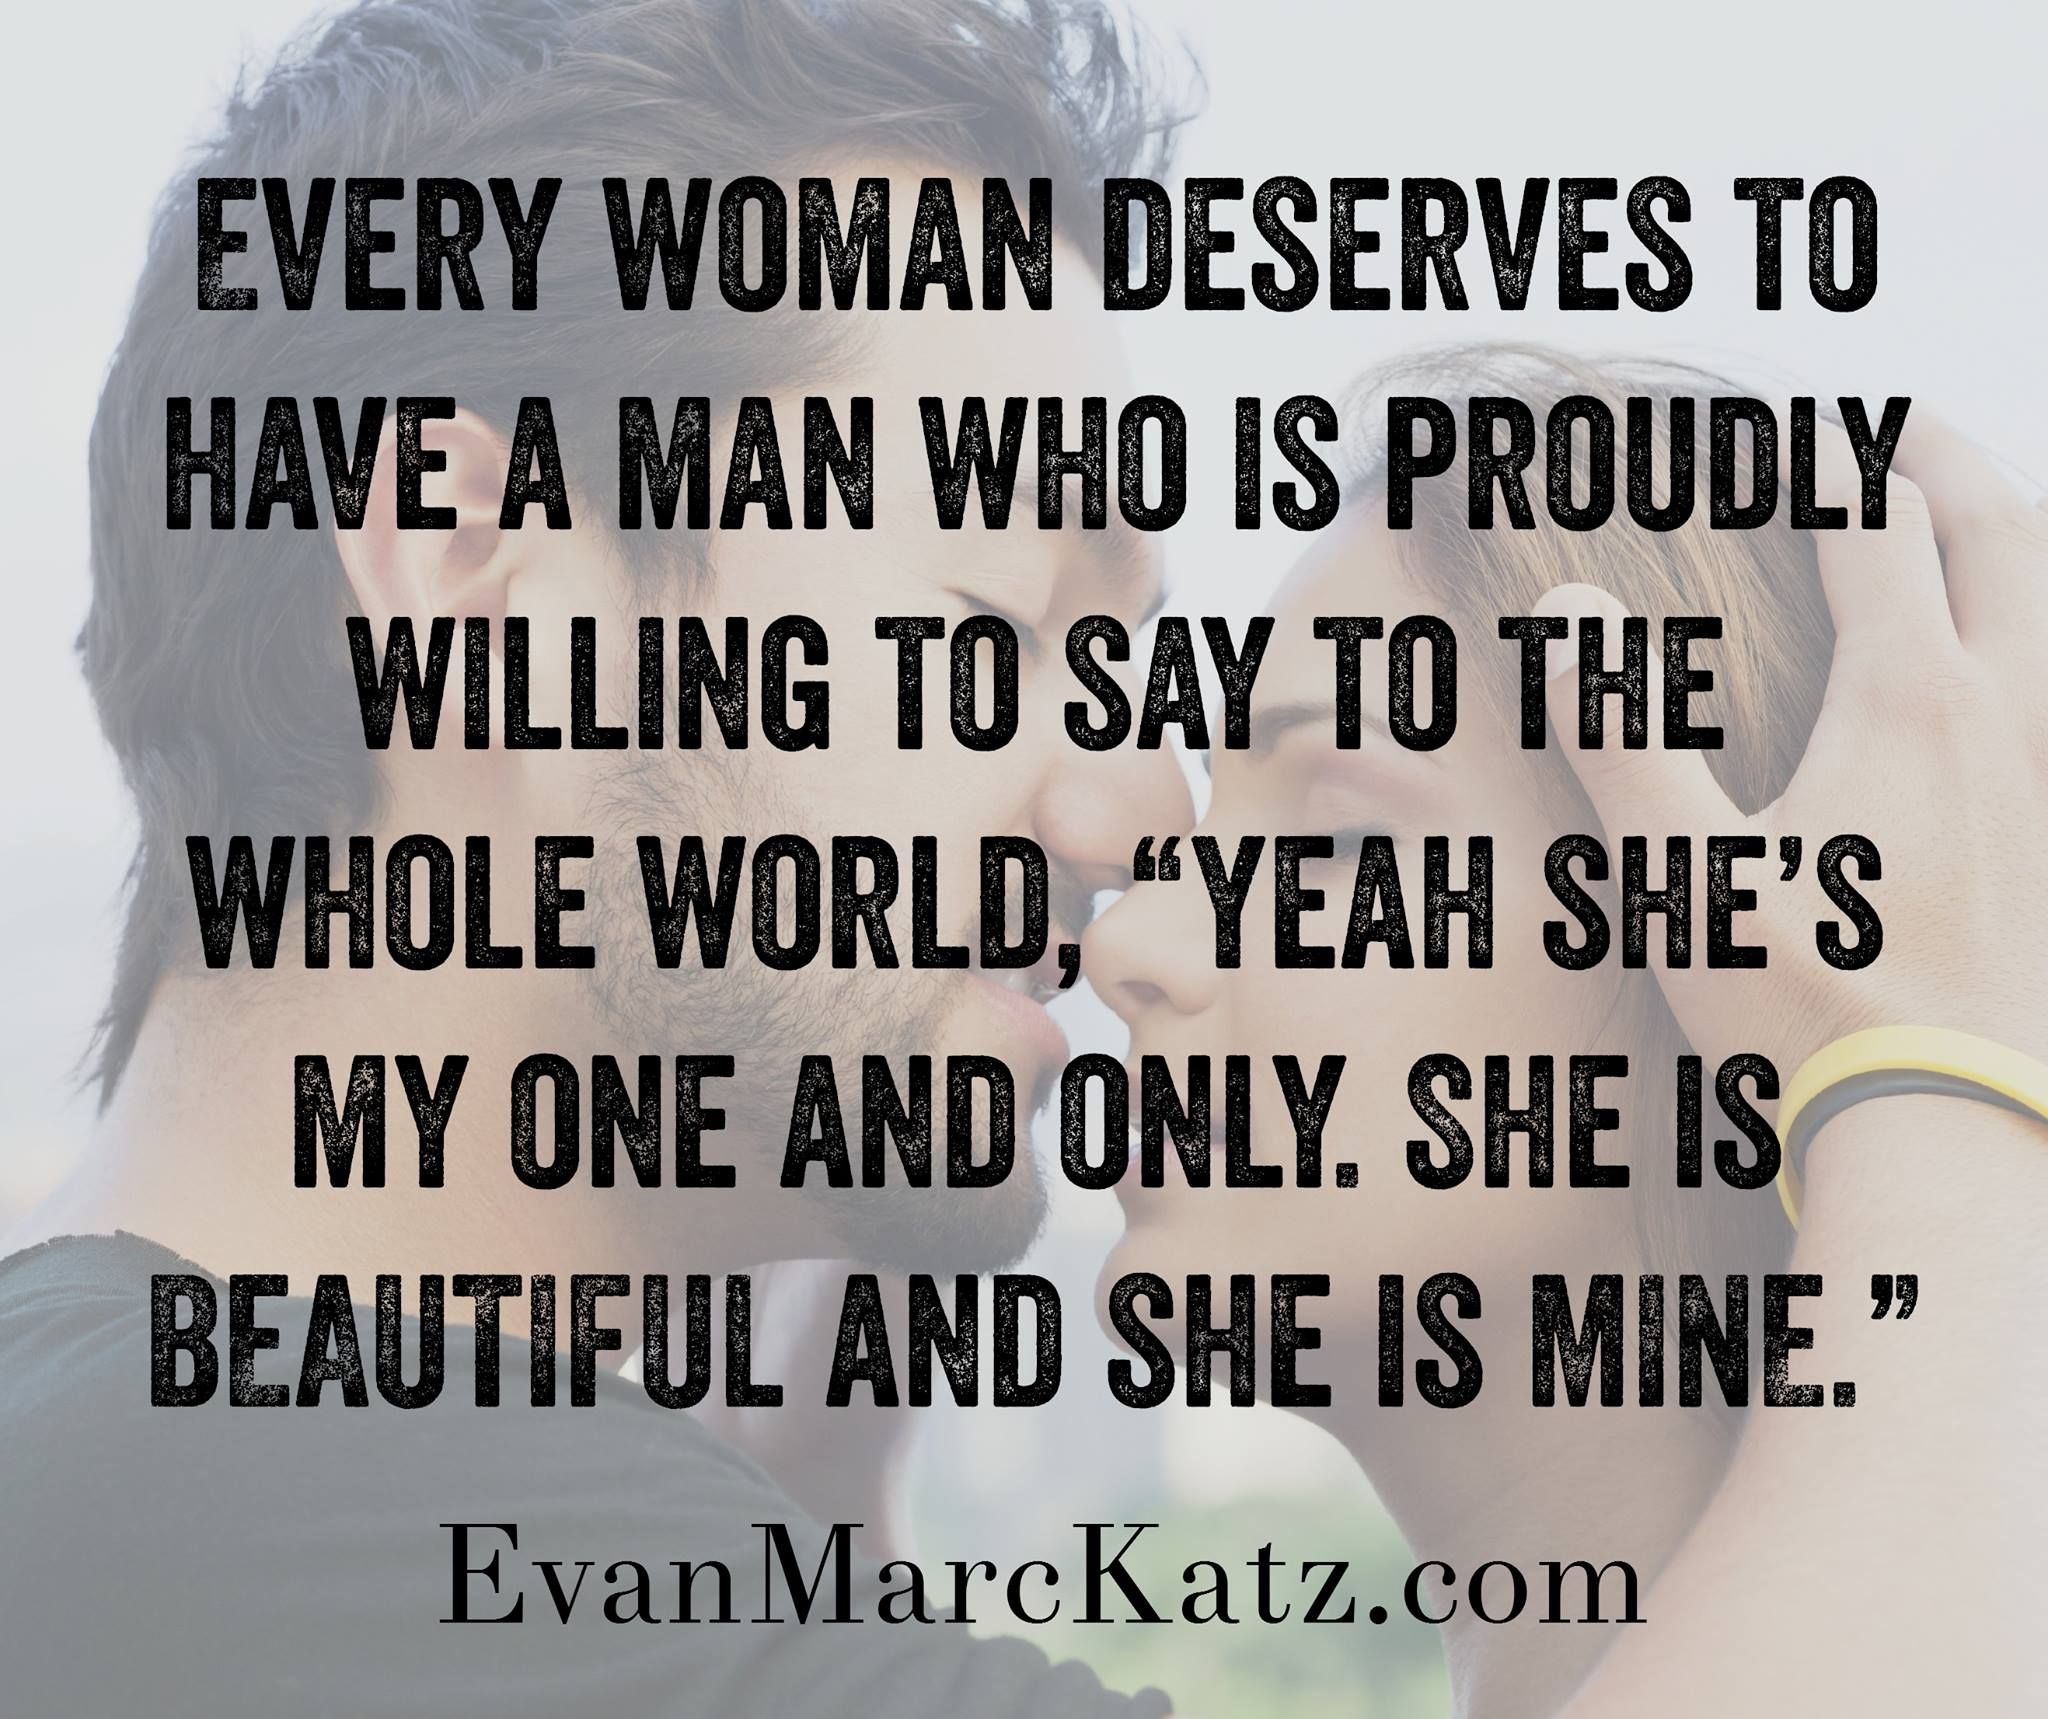 My One And Only Love Quotes Dating And Relationship Advice For Women  One And Only My